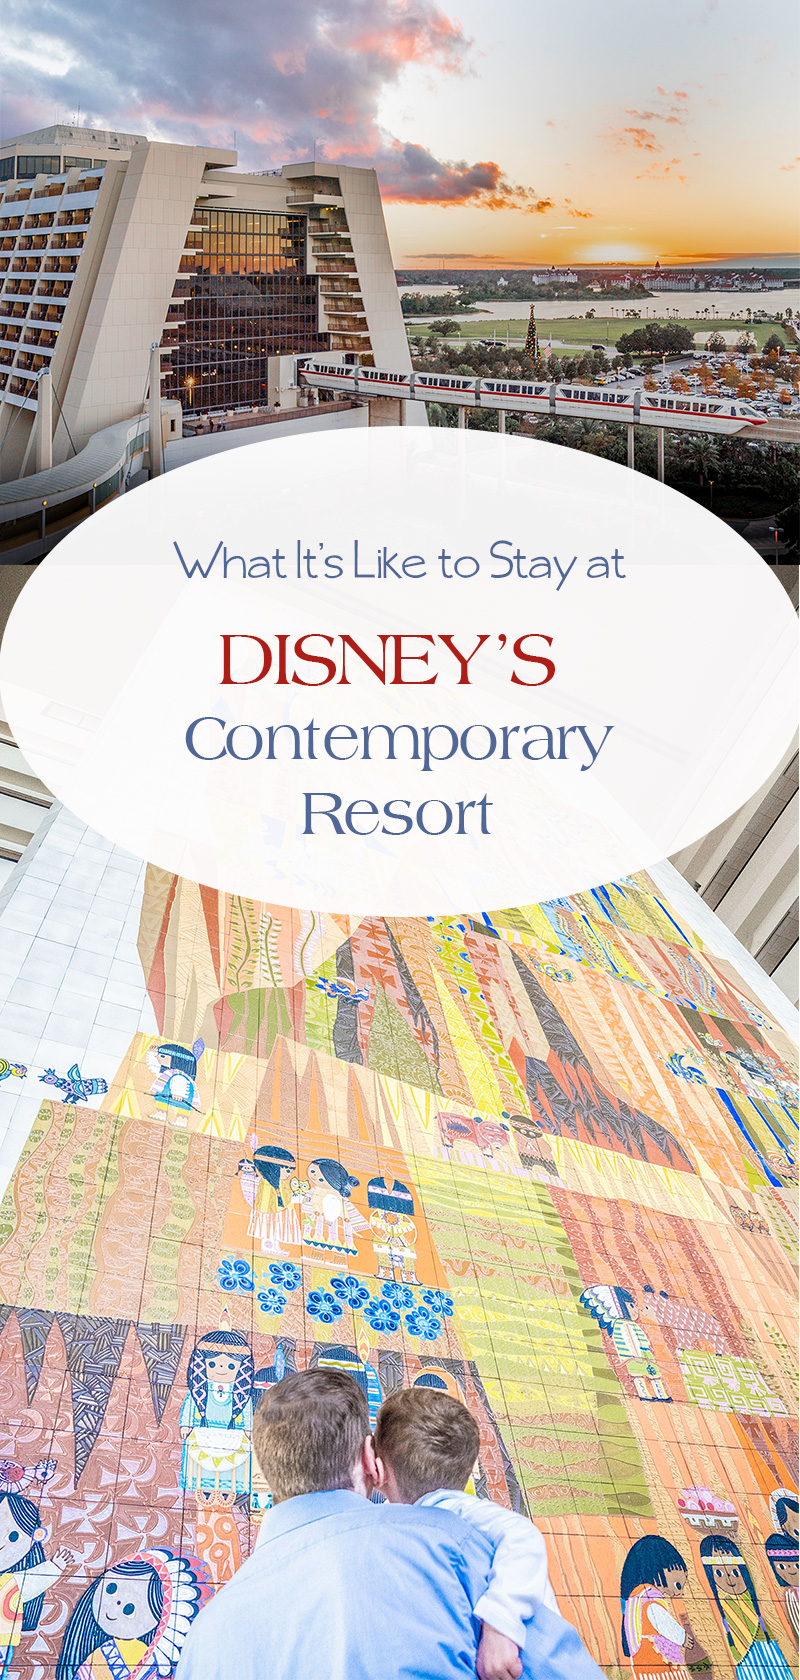 What-Its-Like-To-Stay-at-Disneys-Contempory-Resort-Walt-Disney-World-Travel-Guide